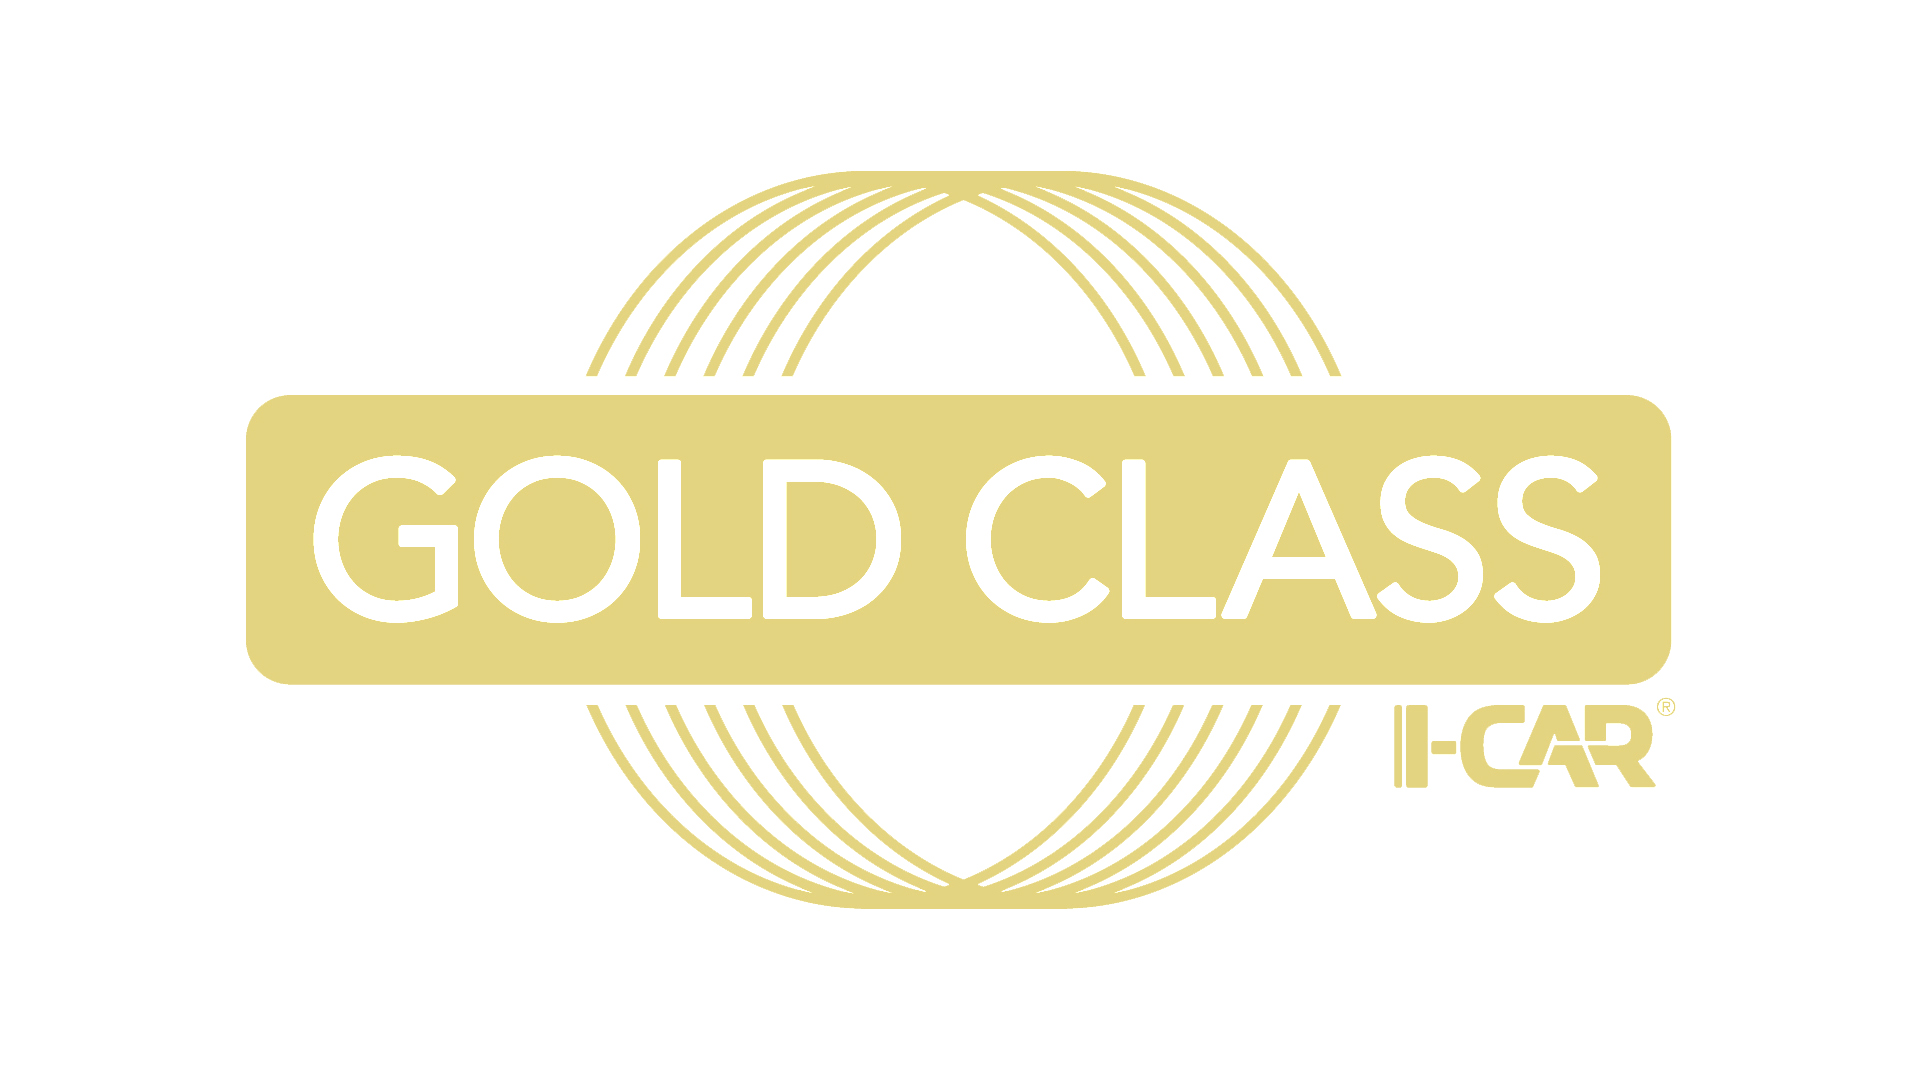 Dedicated to Safety, We are  THE ONLY  I-Car Gold Certified HD Truck Collision Shop in the Western United States!